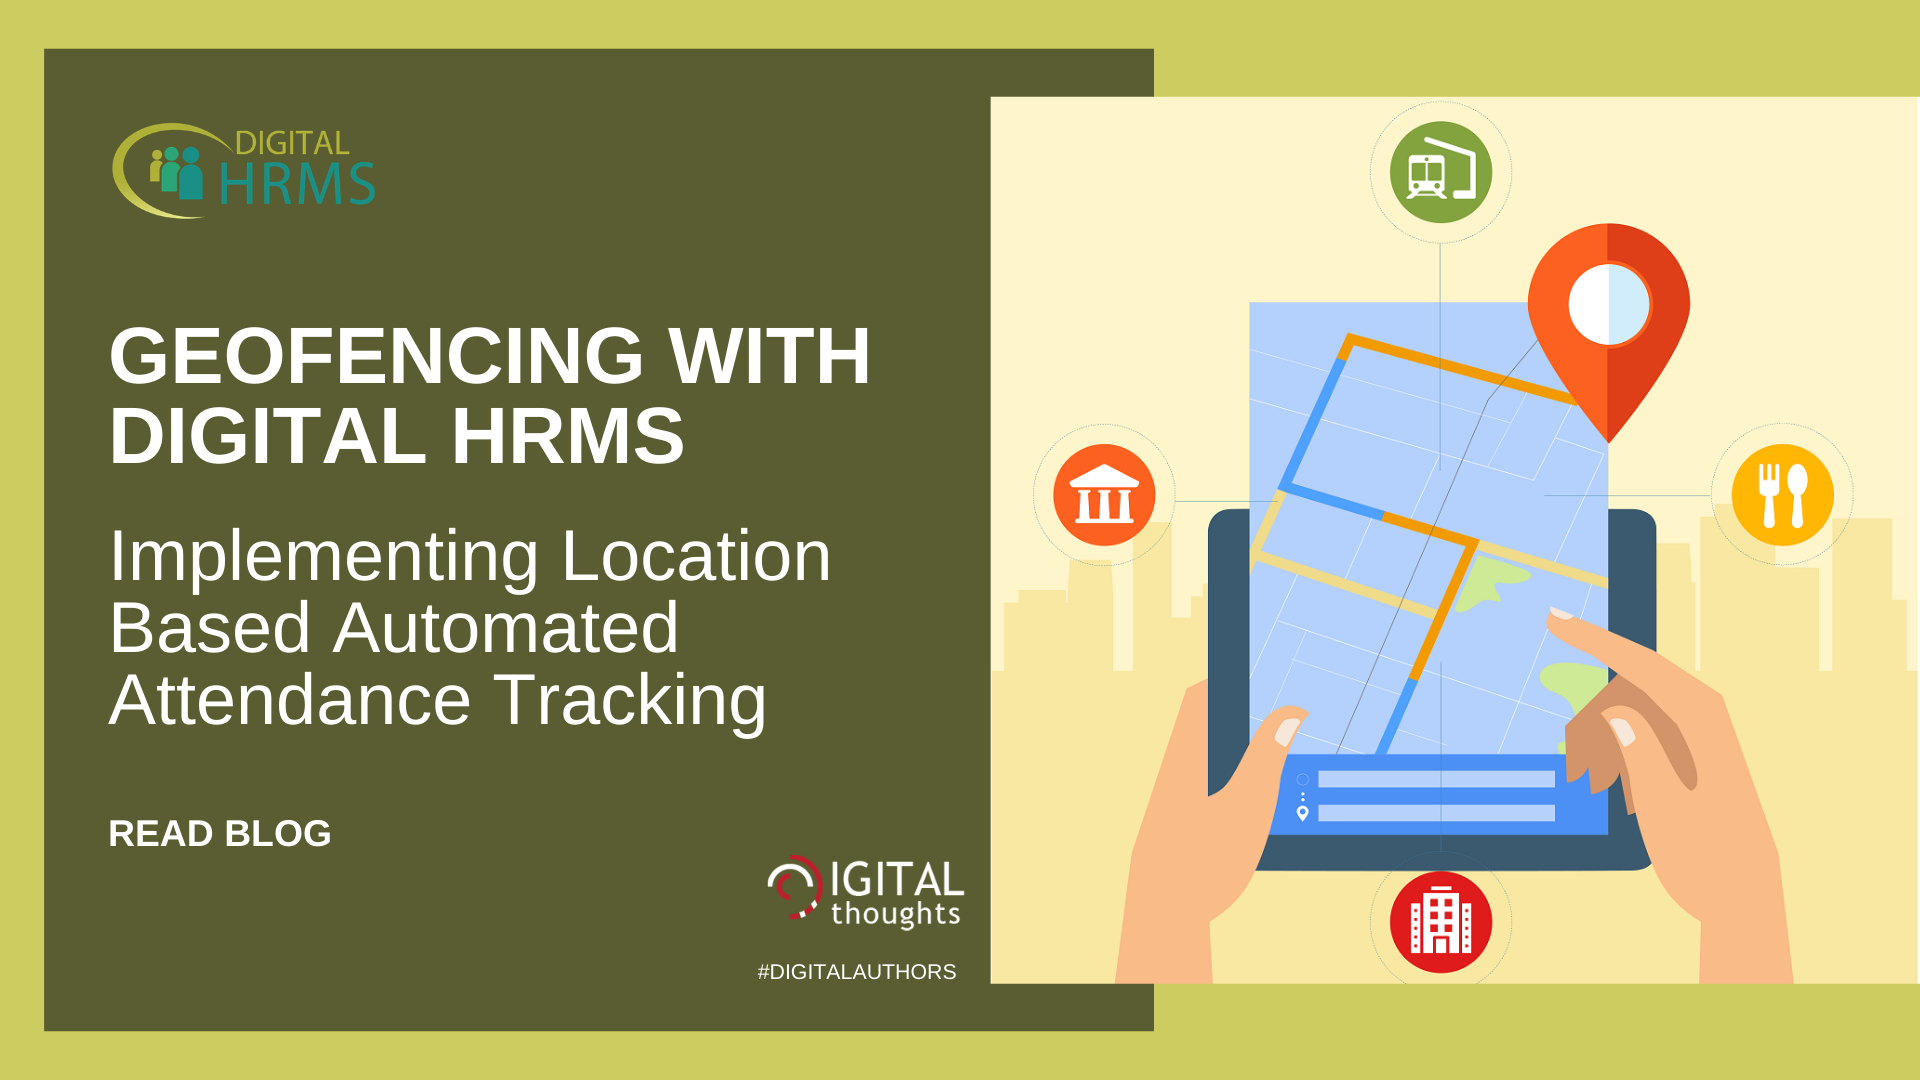 Geofencing With Digital HRMS: Implementing Location Based Automated Attendance Tracking